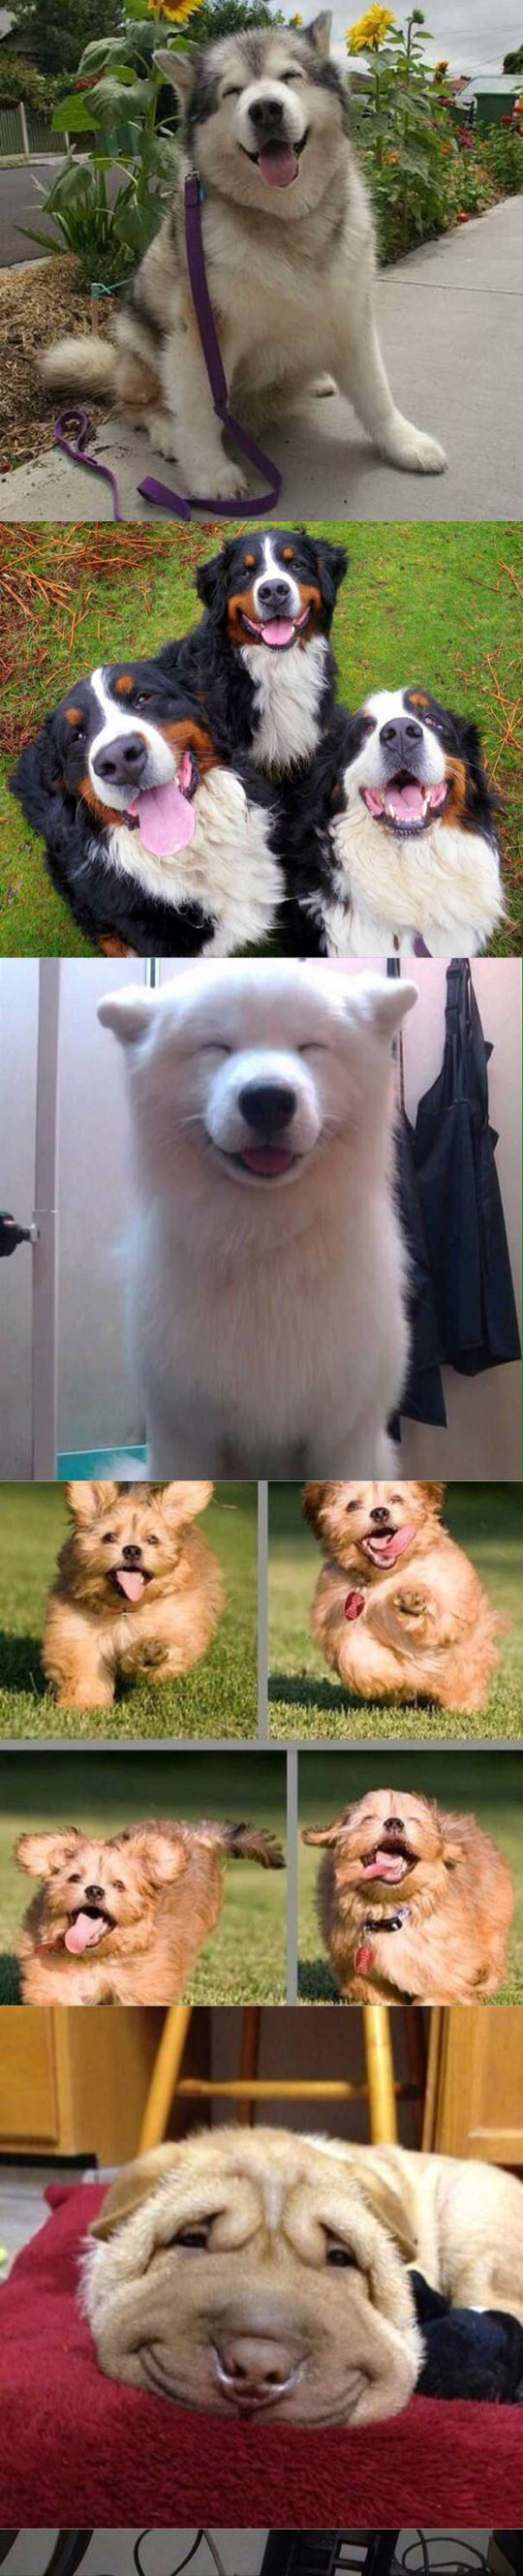 funny-dogs-smiling-happy-cute